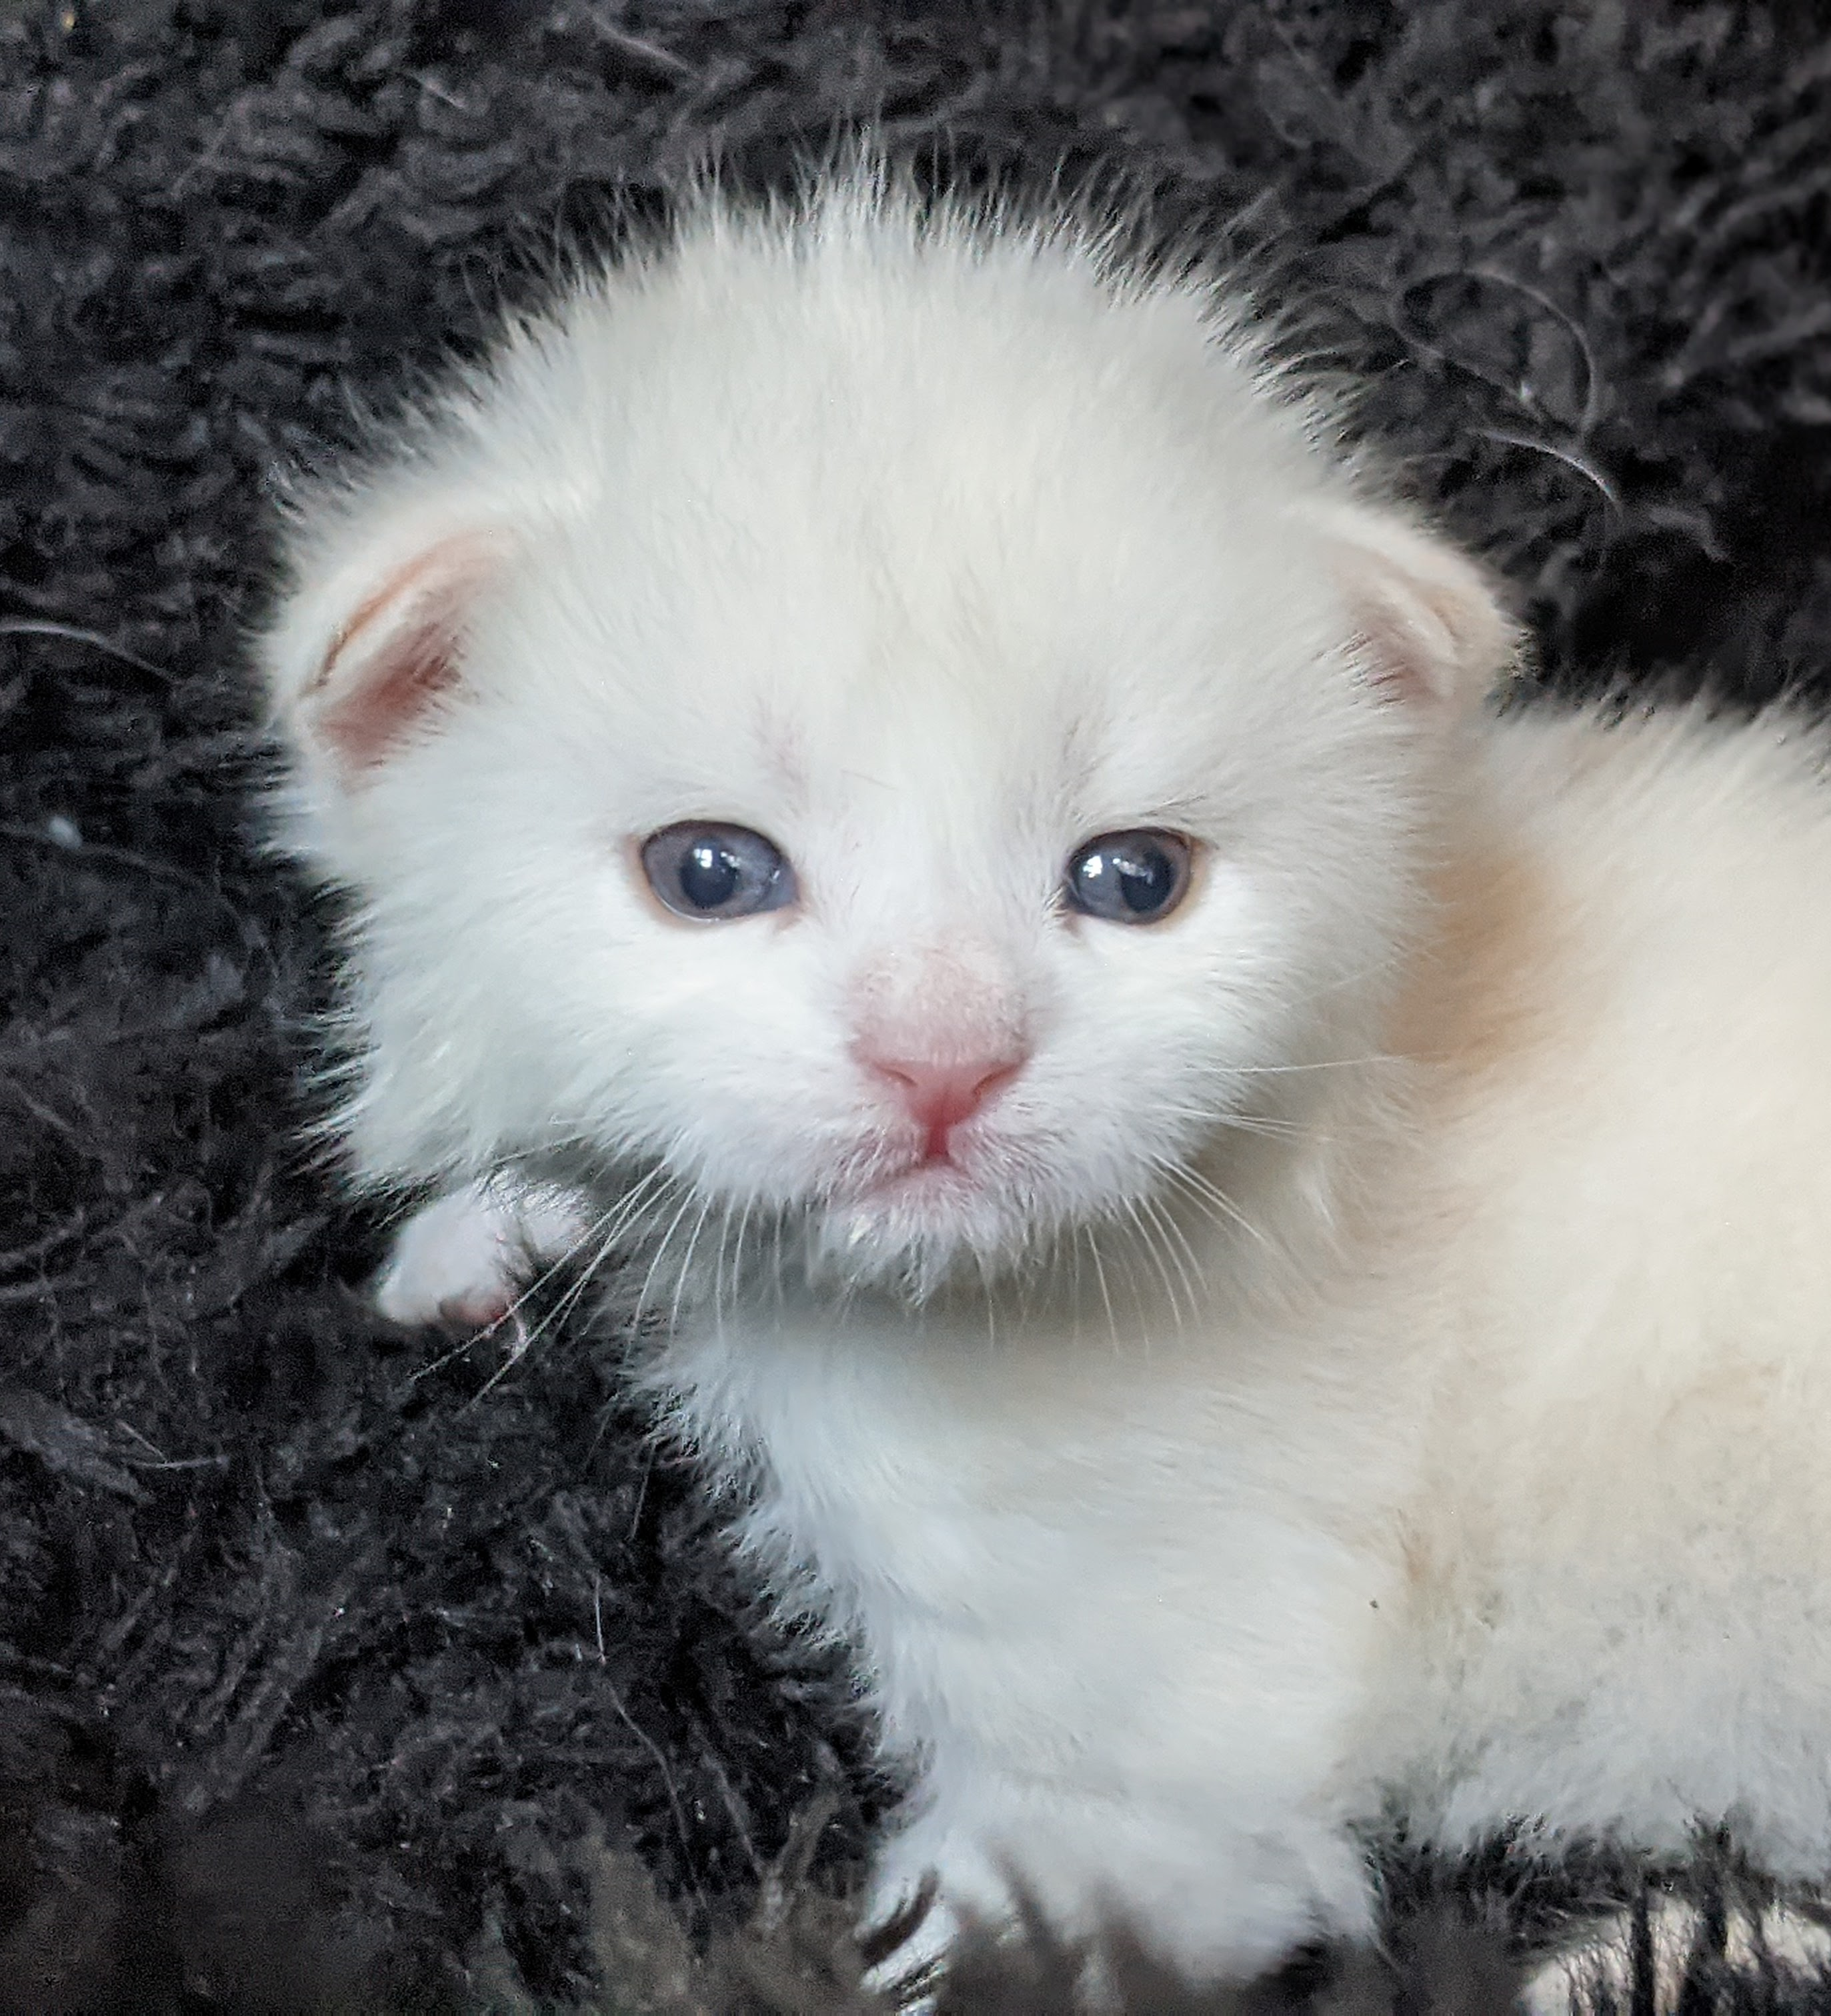 Chatterie Coon Toujours, Ramdam de Coon Toujours, chaton mâle maine coon, trois semaines